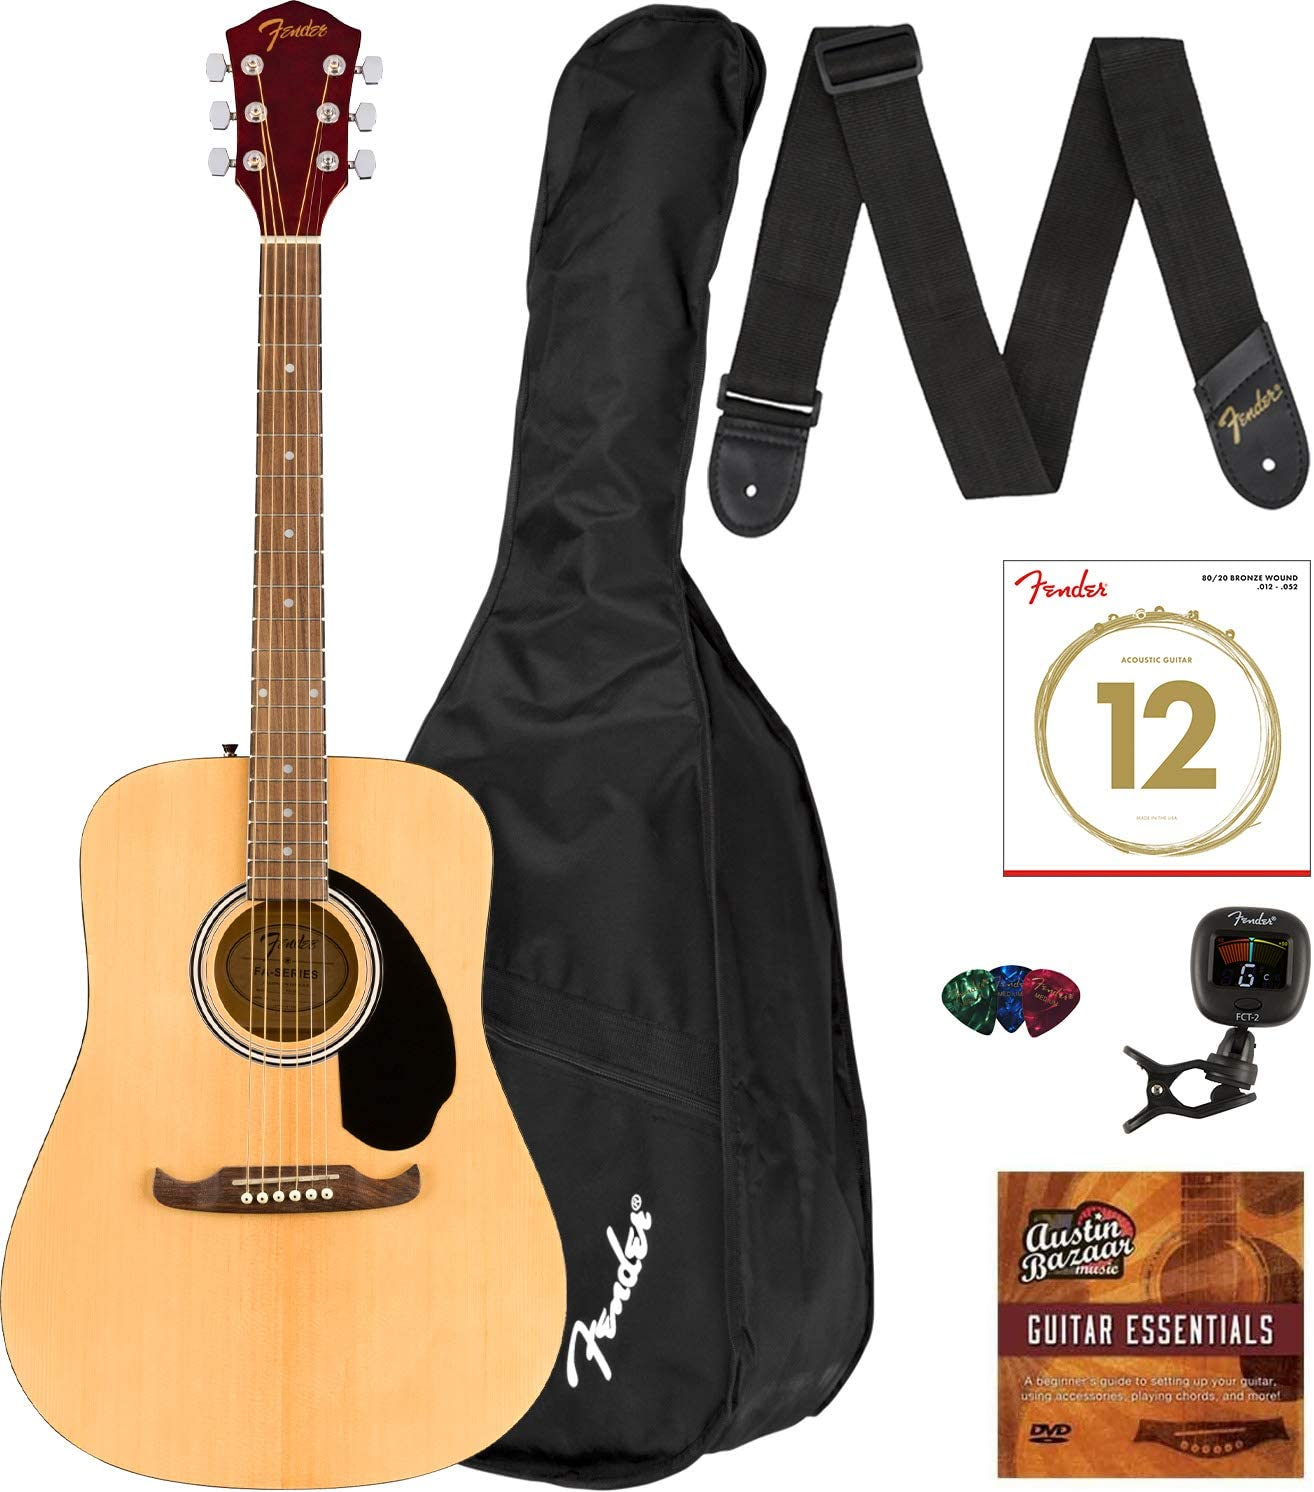 Fender FA-125 Dreadnought Acoustic Guitar Bundle with Gig Bag, Clip-on Tuner, Strap, Strings, Picks, and Austin Bazaar Instructional DVD